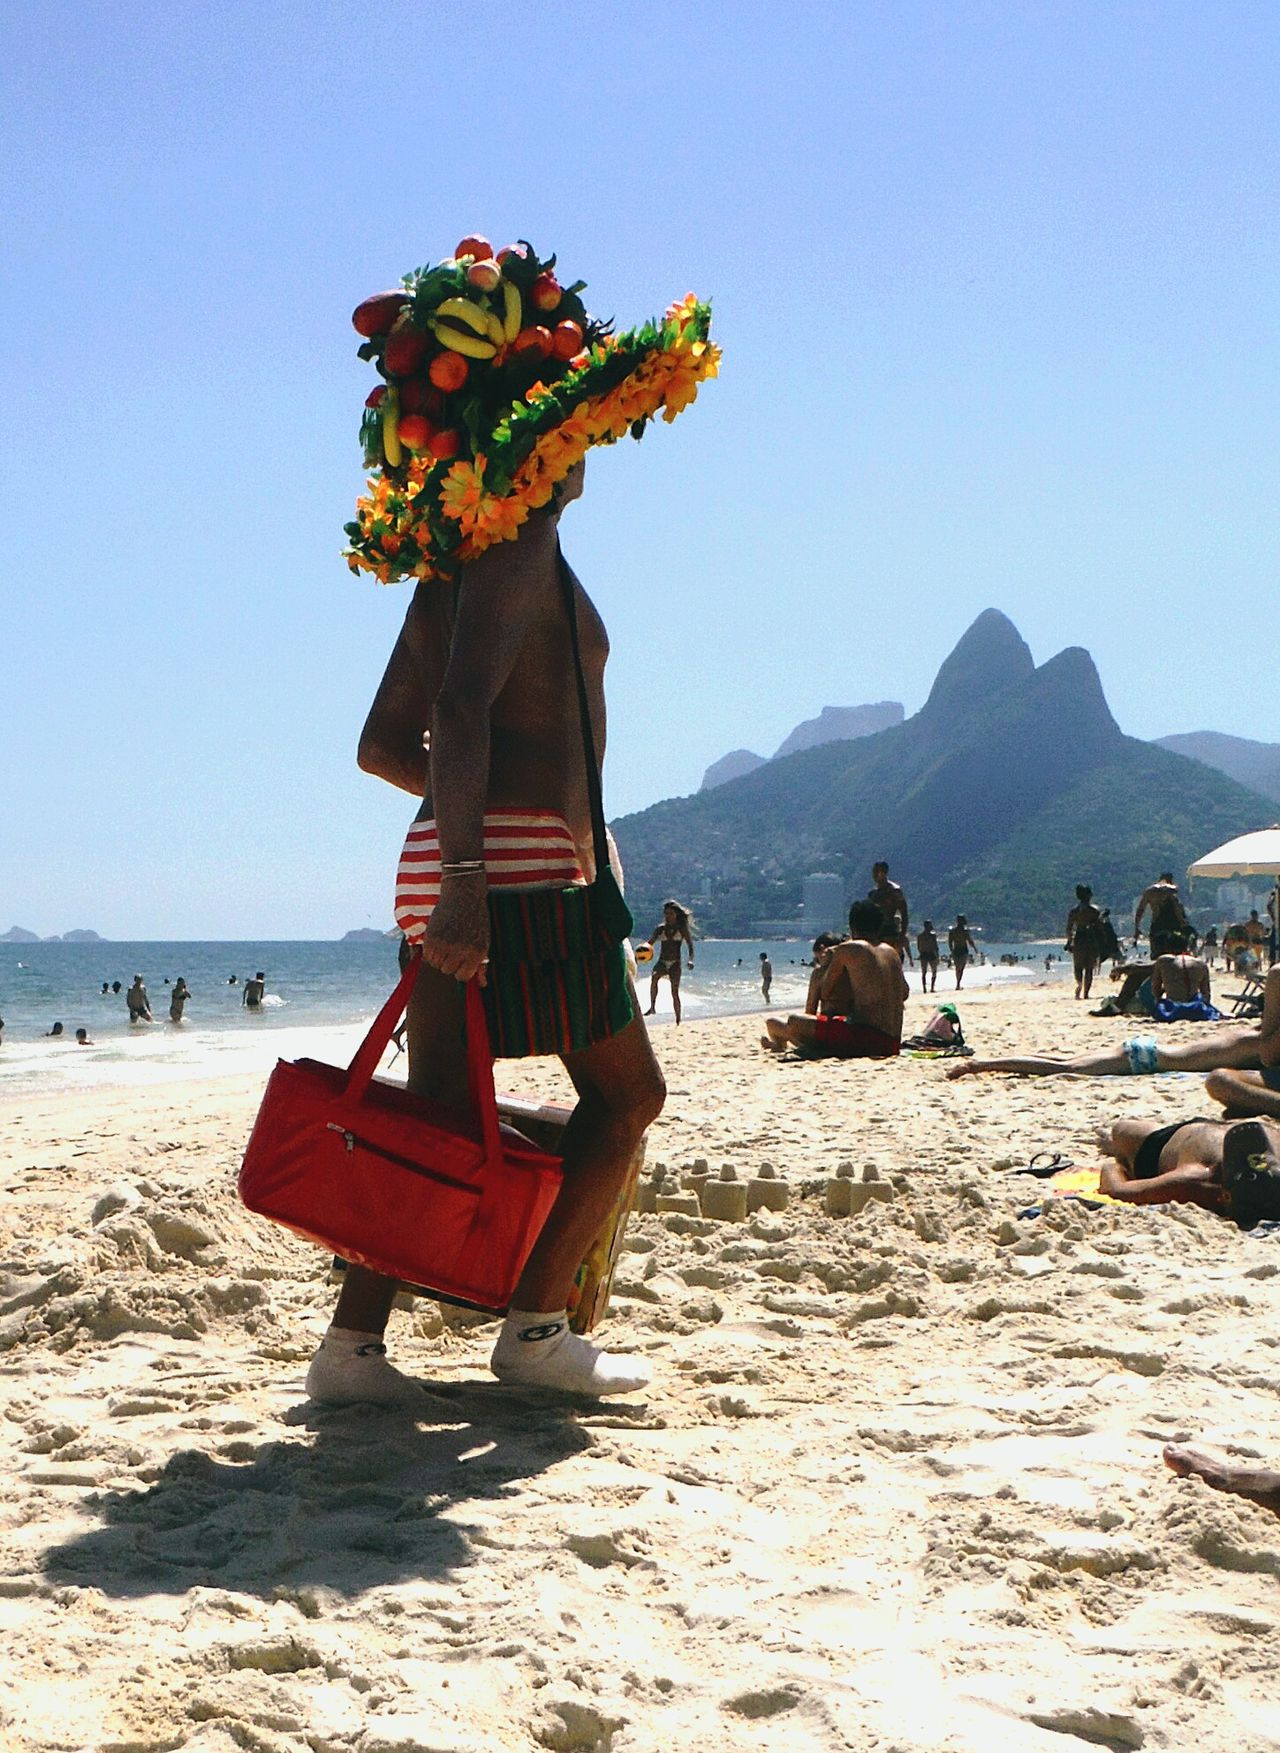 Brazil Brasil Ipanema Beach Ipanema Rio De Janeiro Eyeem Fotos Collection⛵ Rio De Janeiro Vendor Selling Refreshment Beach Sunny Day Hat Friut Big Hat